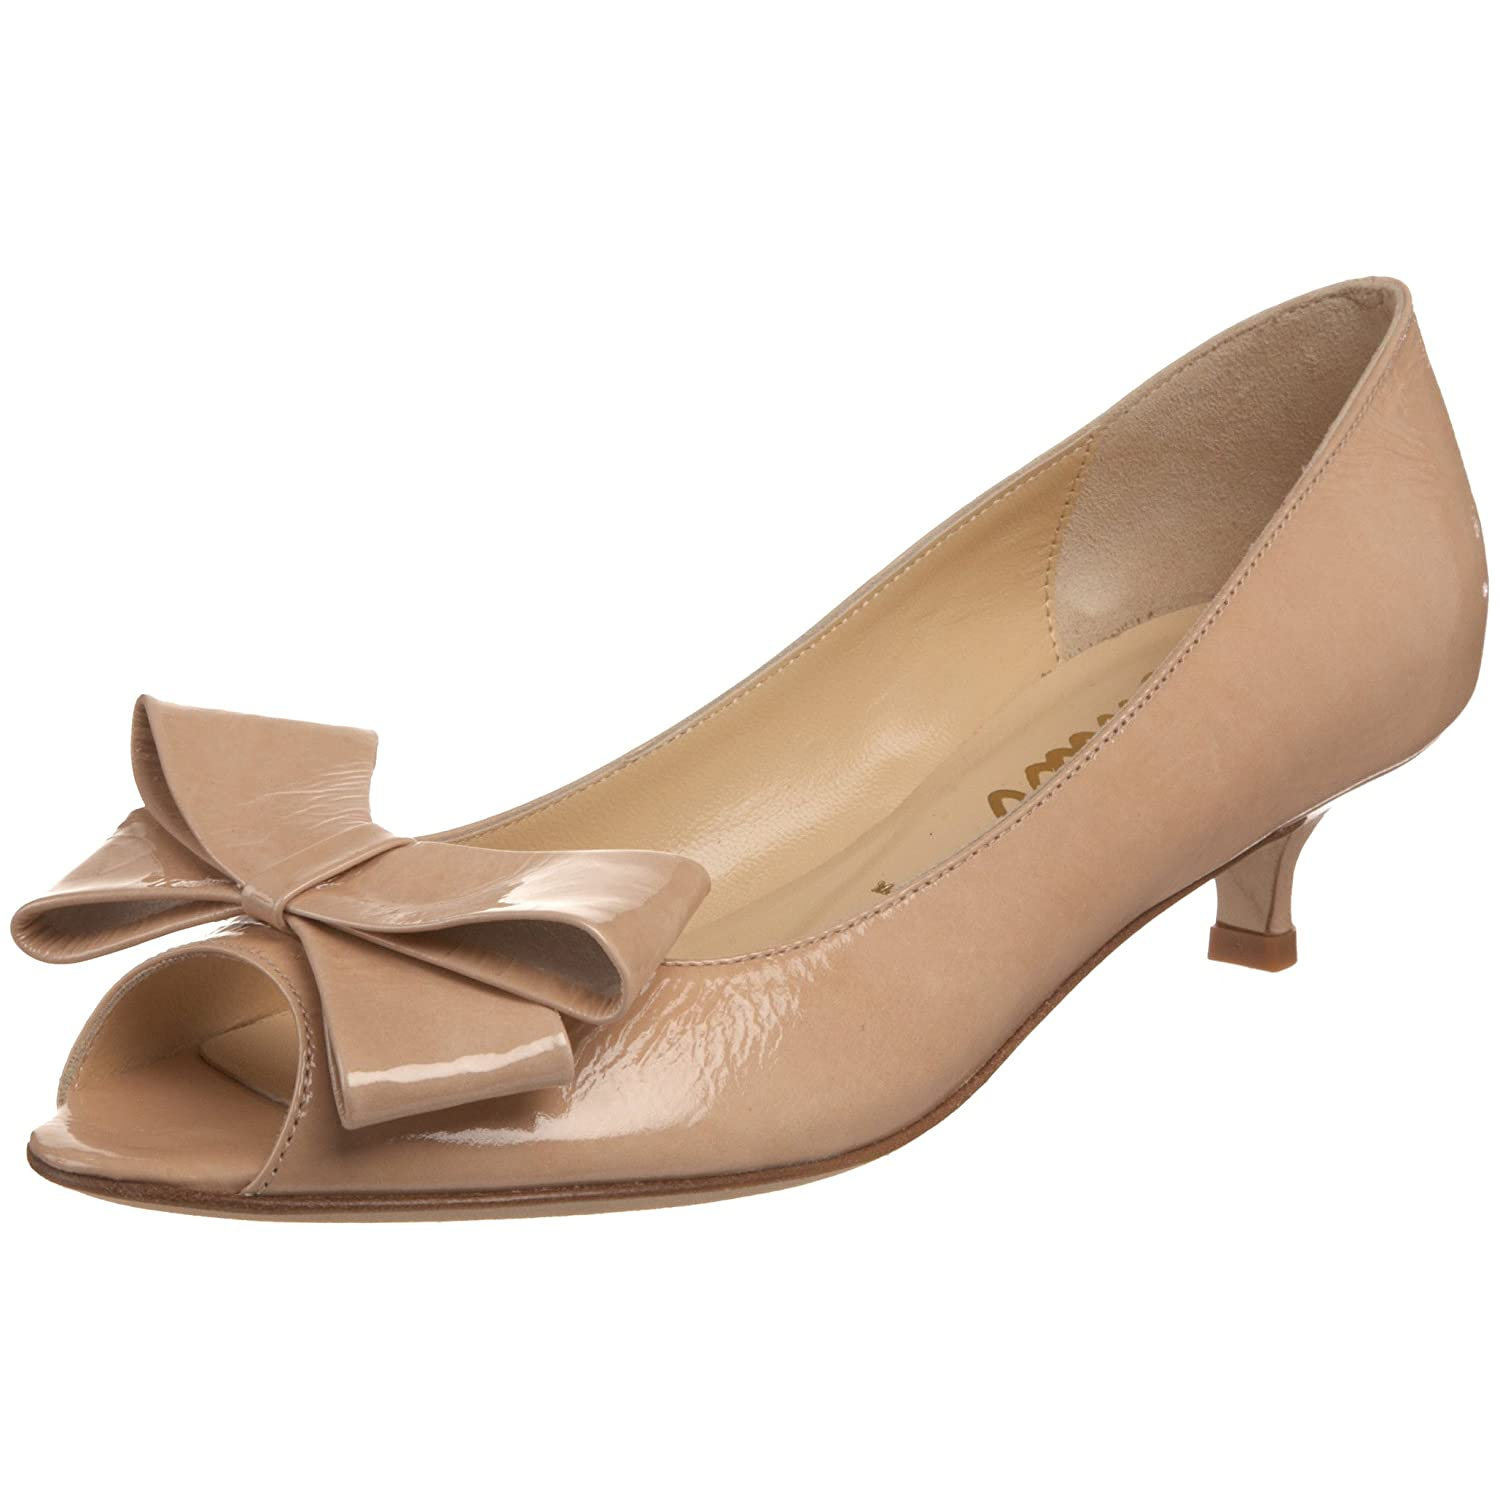 Amazon.com | Butter Women's Cass30 Peep-Toe Kitten Heel Pump, nude ...